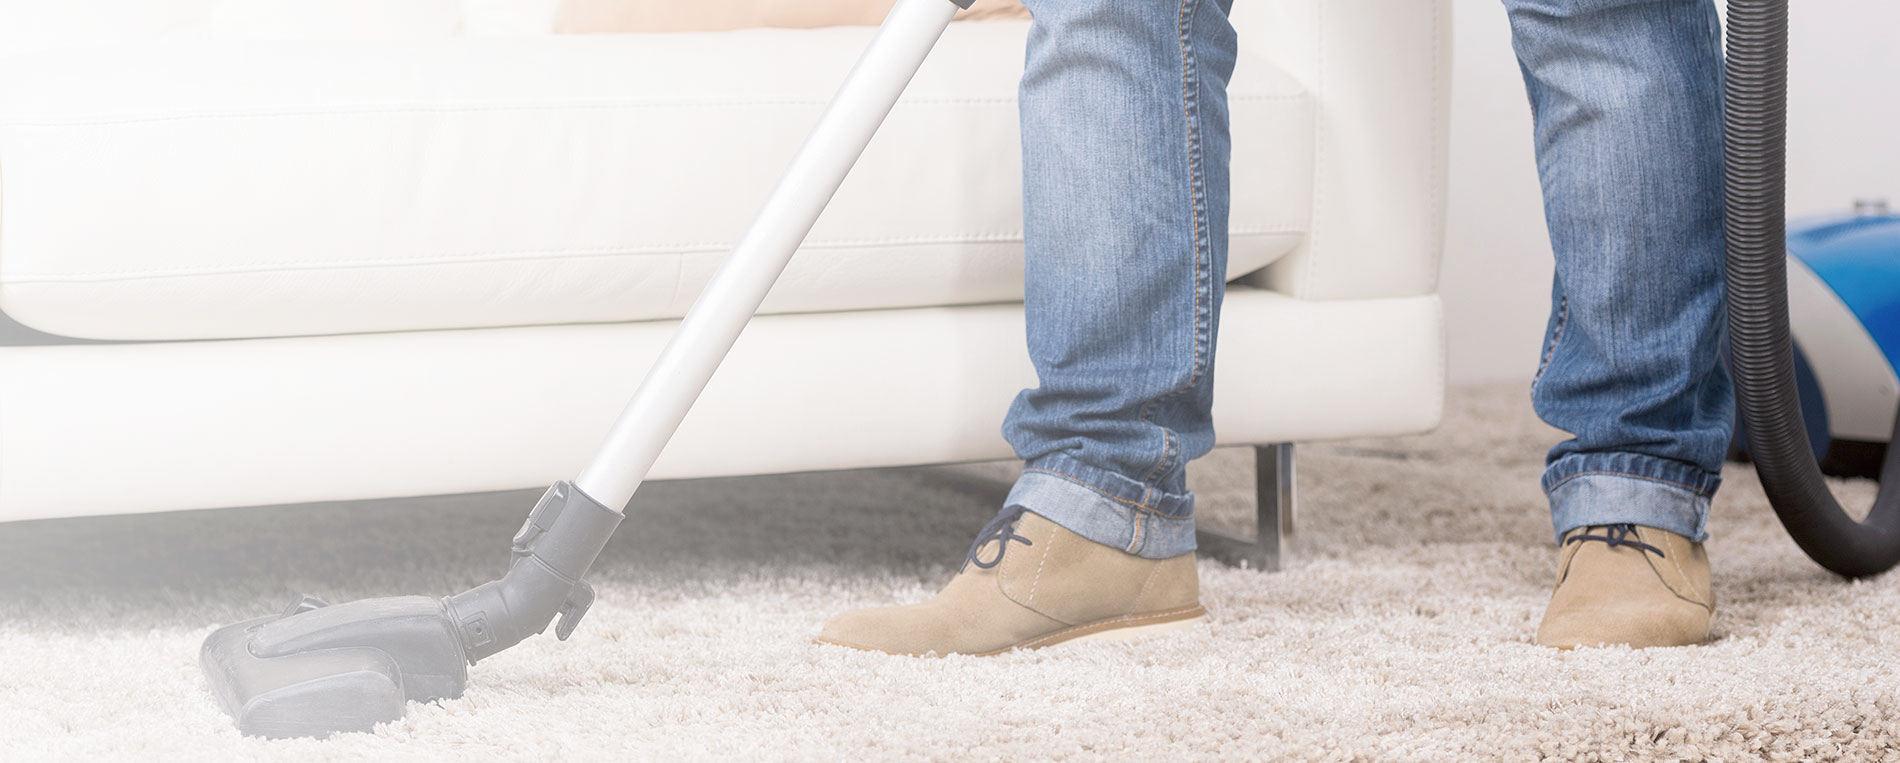 Basic Methods of Carpet Cleaning